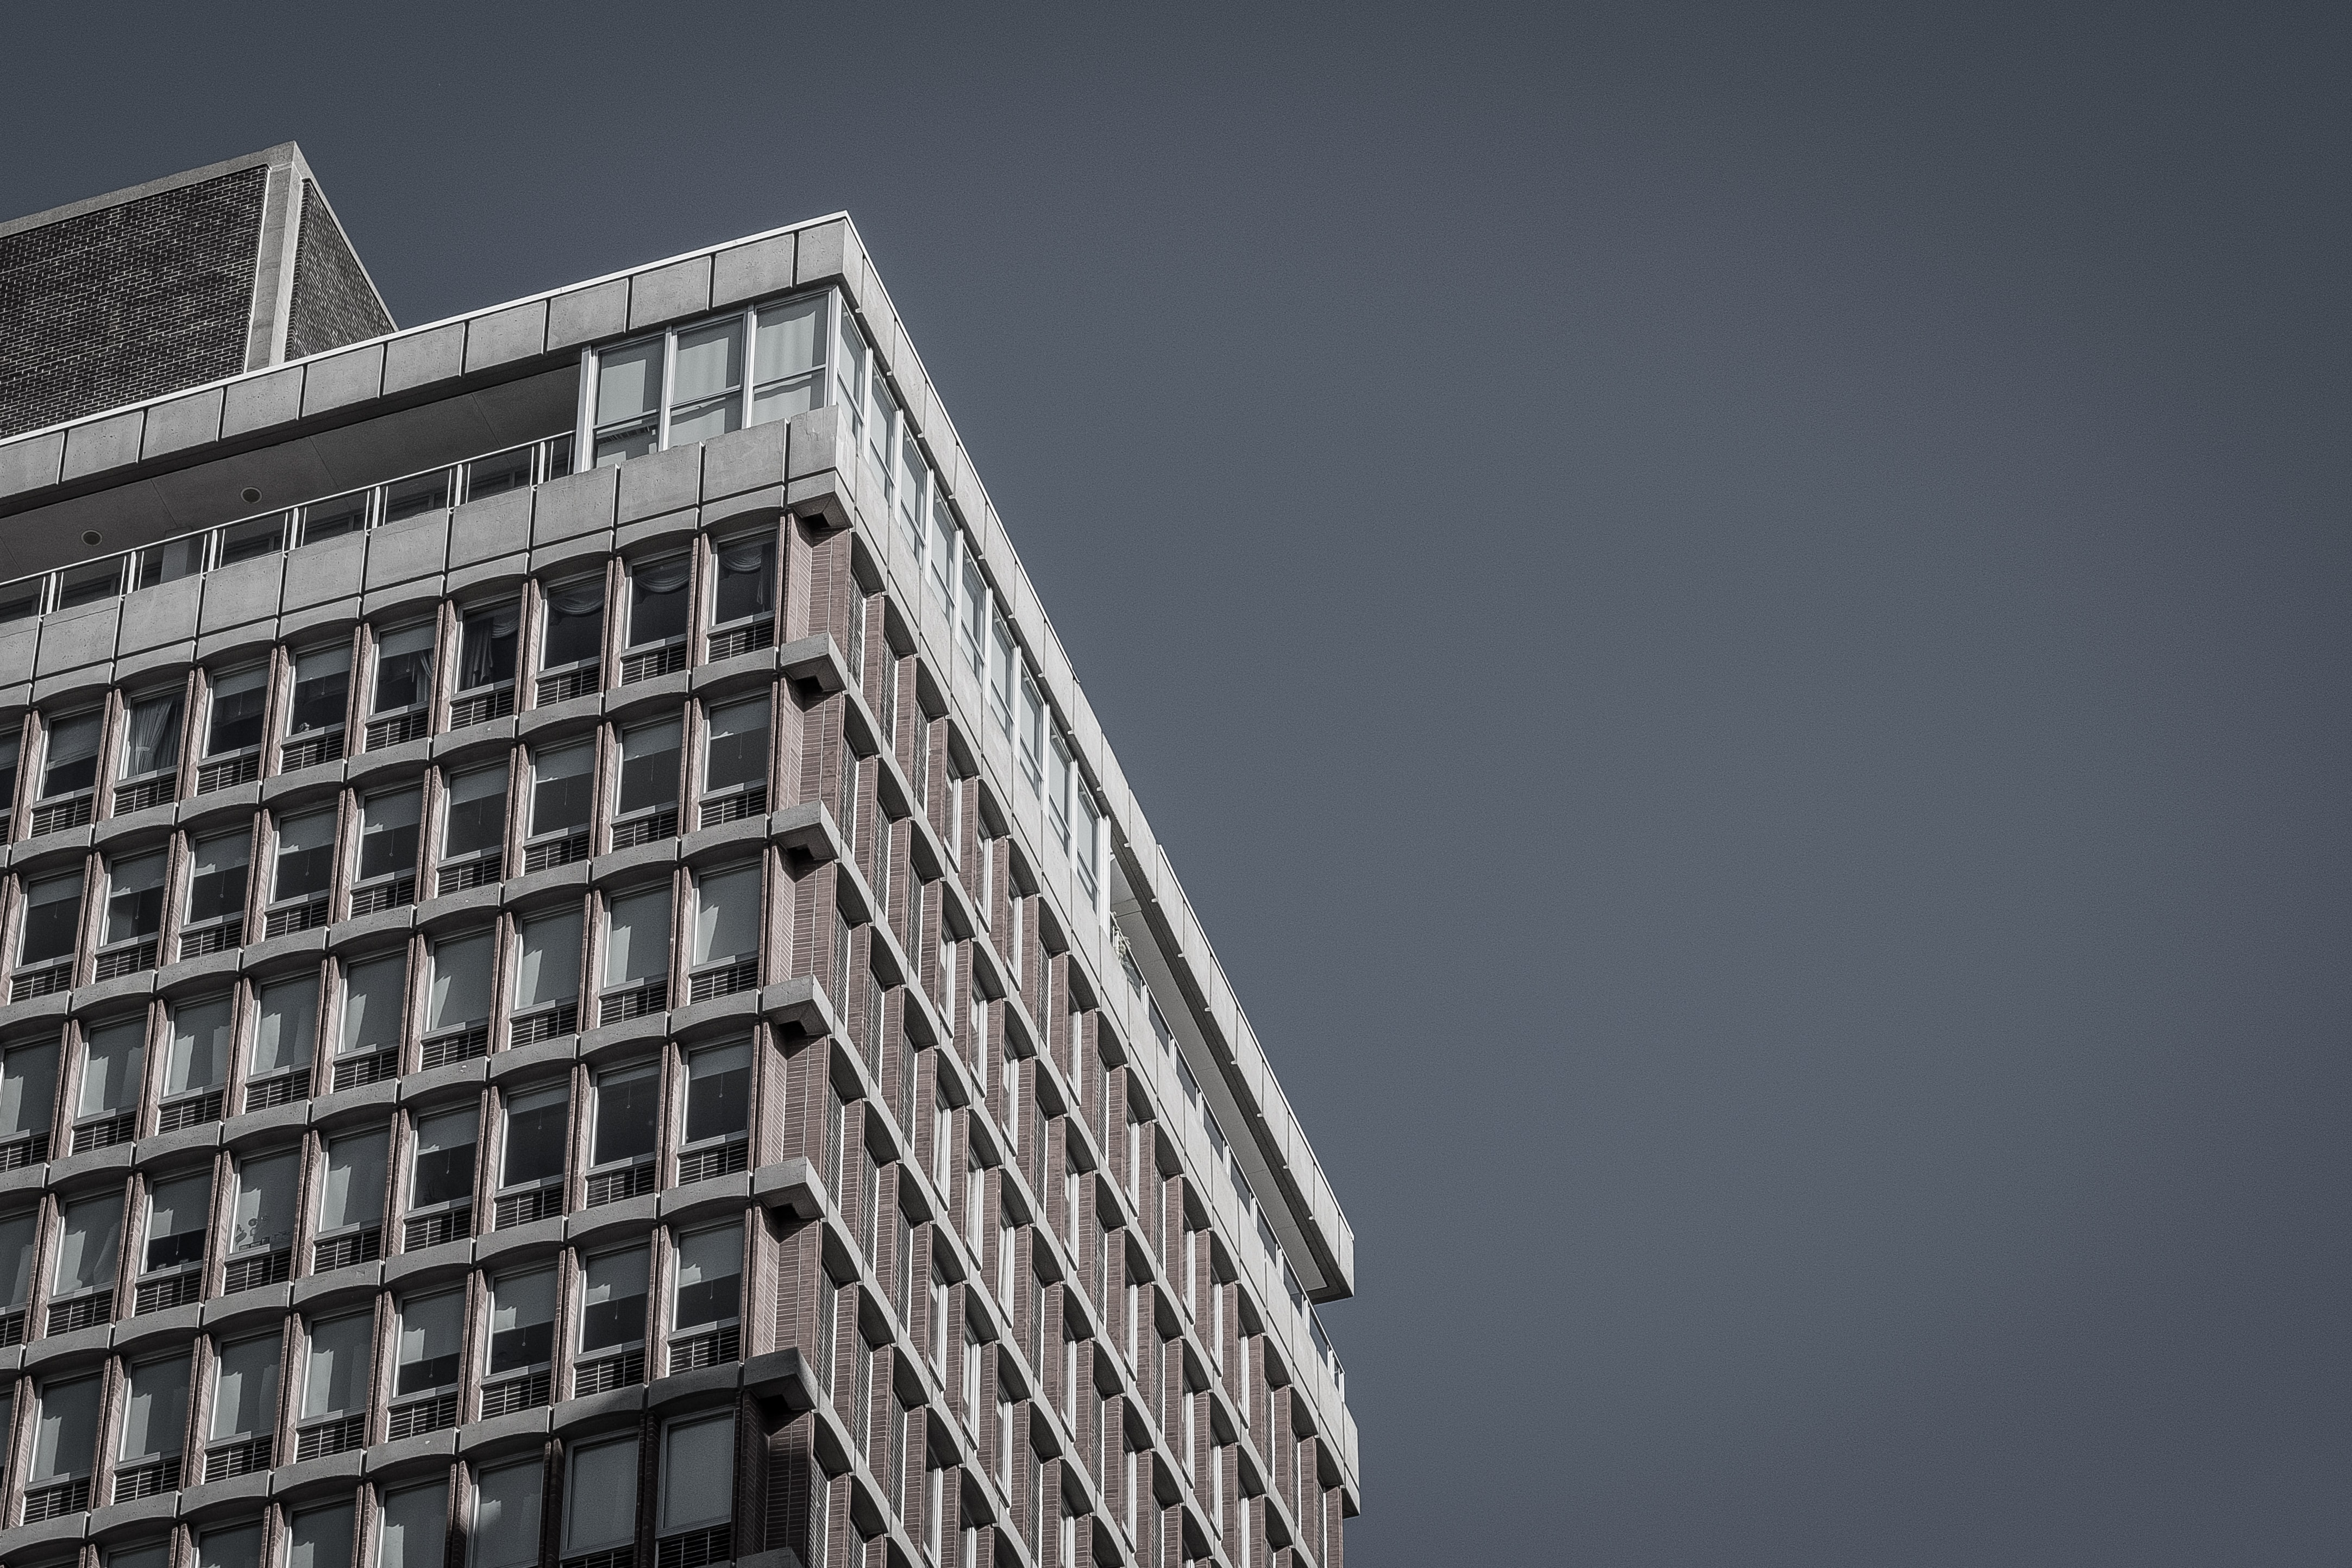 low-angle photography of high-rises building